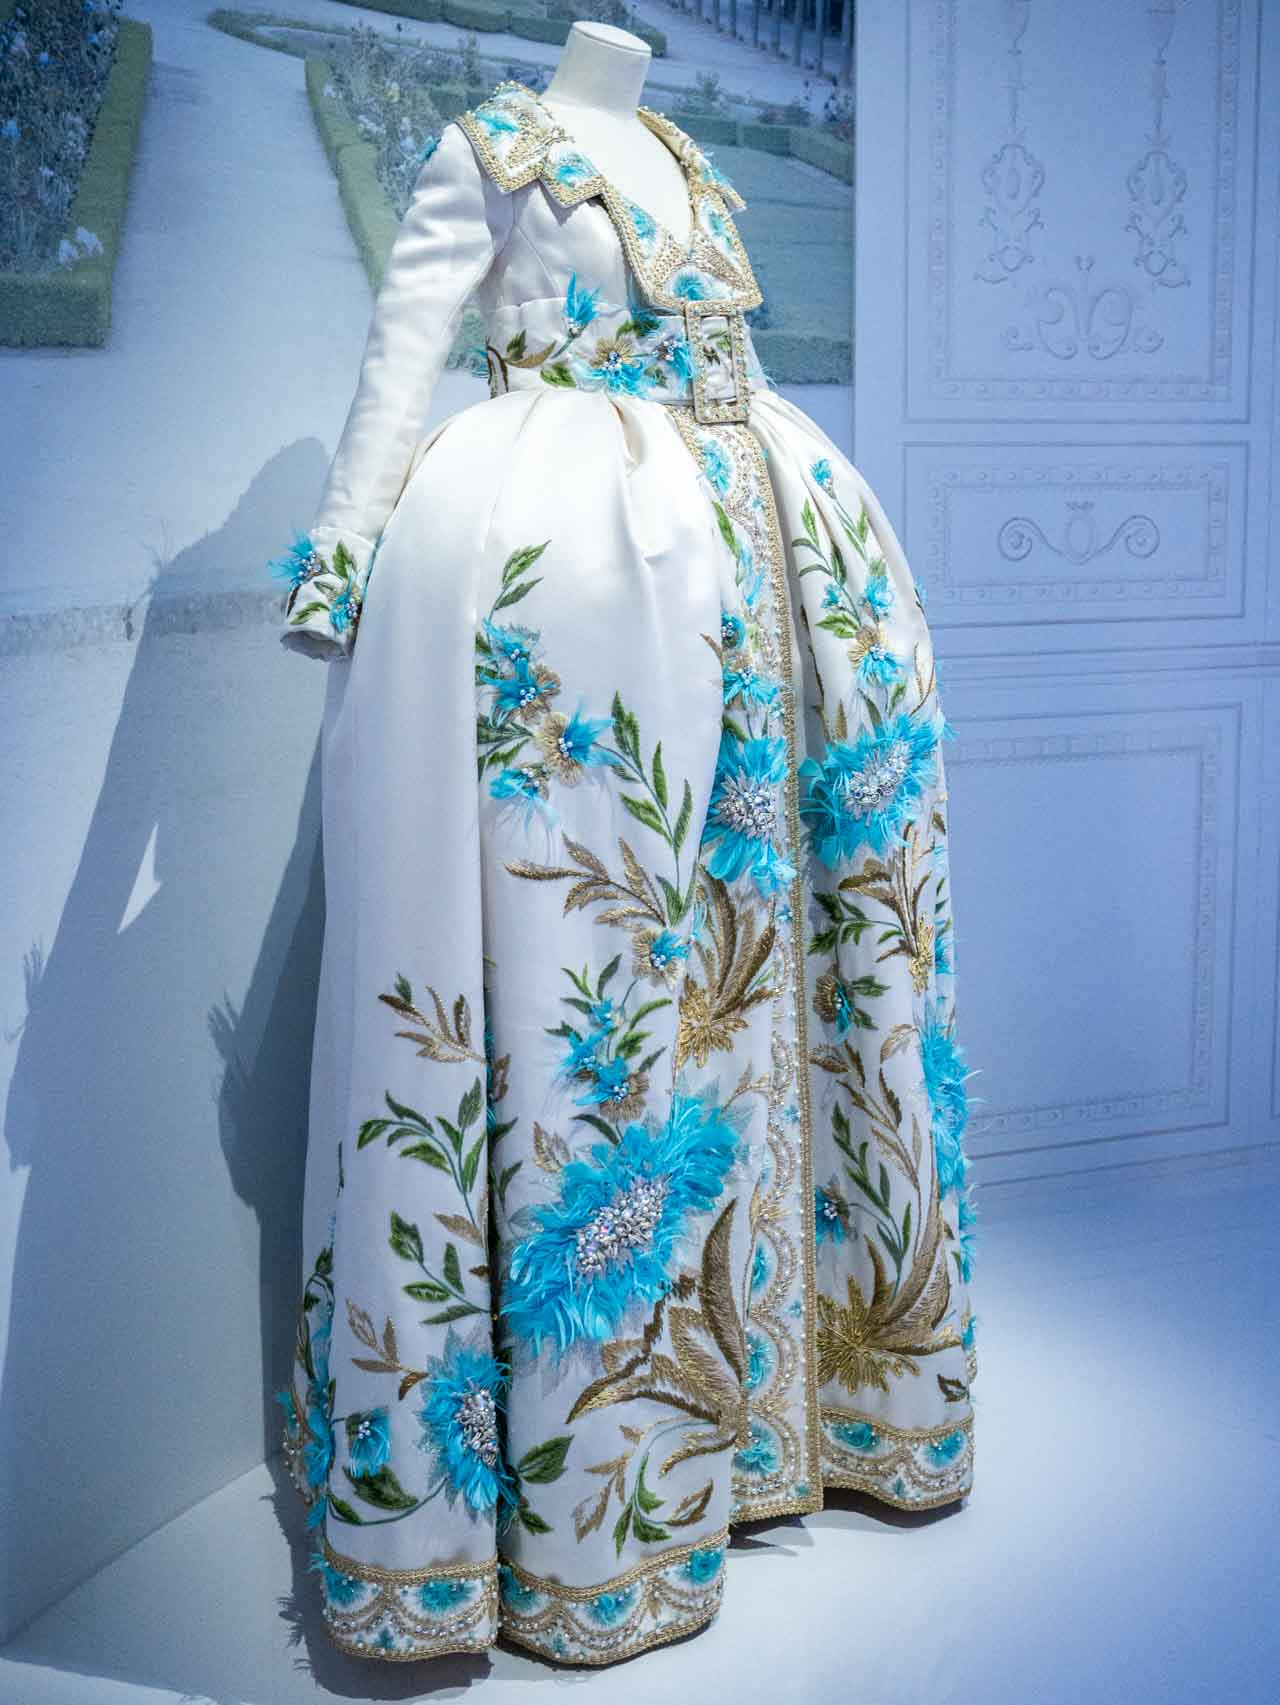 White and blue coat-dress. Christian Dior by John Galliano, Haute Couture, Spring-Summer 2005. Taken at the V&A exhibition © The Cutting Class, 2019. Image 1.